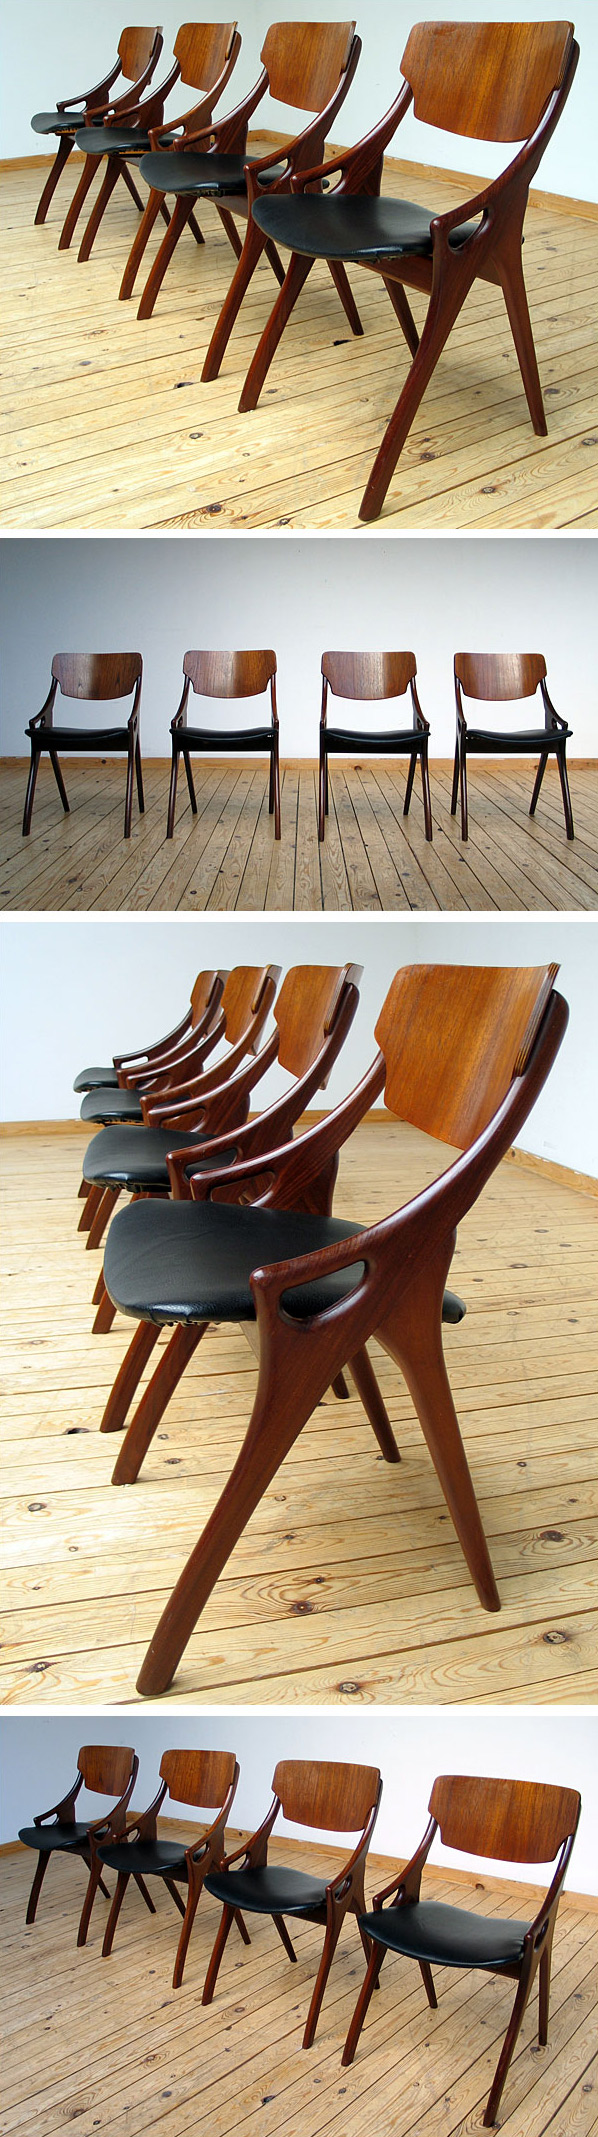 4 Dinning chairs designed by Hovmand Olsen Large